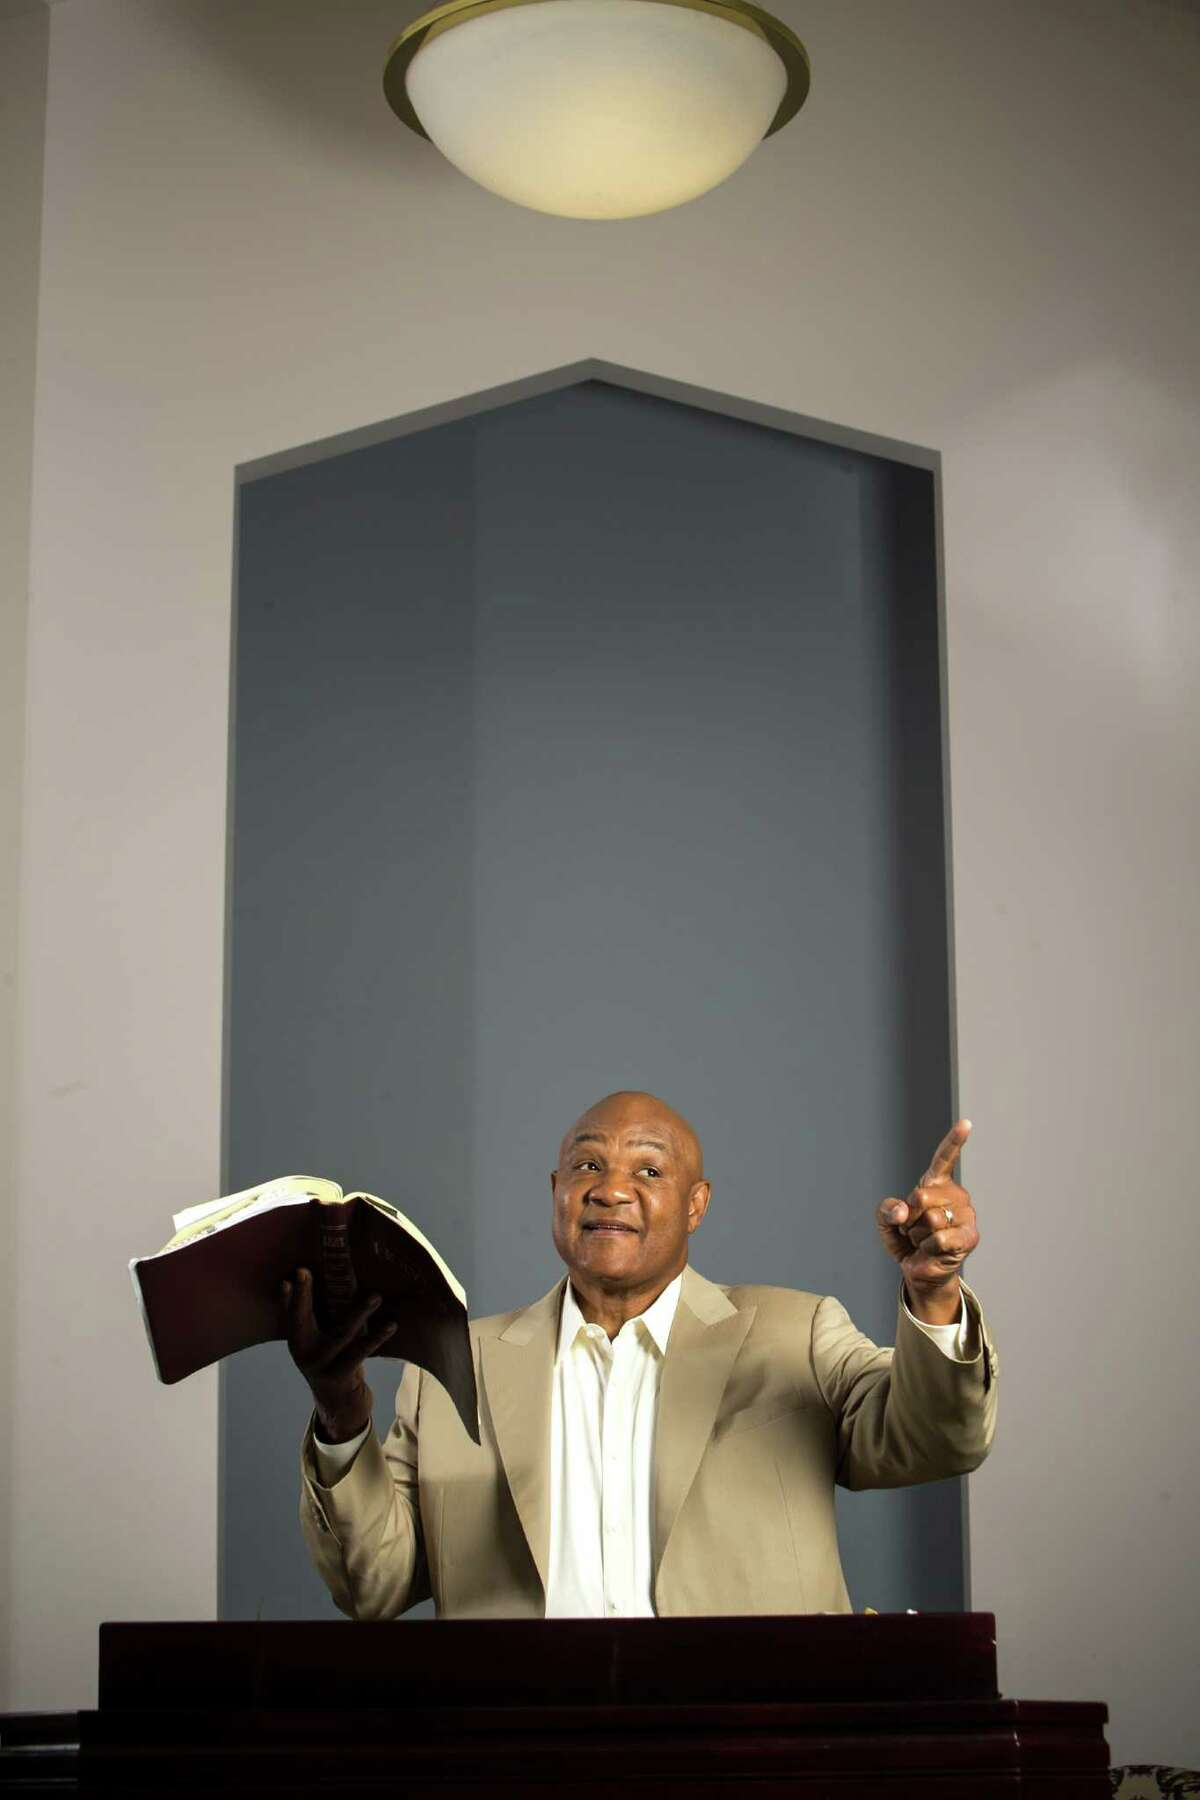 George Foreman, former heavyweight boxing champion, who is now a minister, poses for a portrait in the sanctuary of his church on Thursday, July 23, 2015, in Houston. ( Brett Coomer / Houston Chronicle )